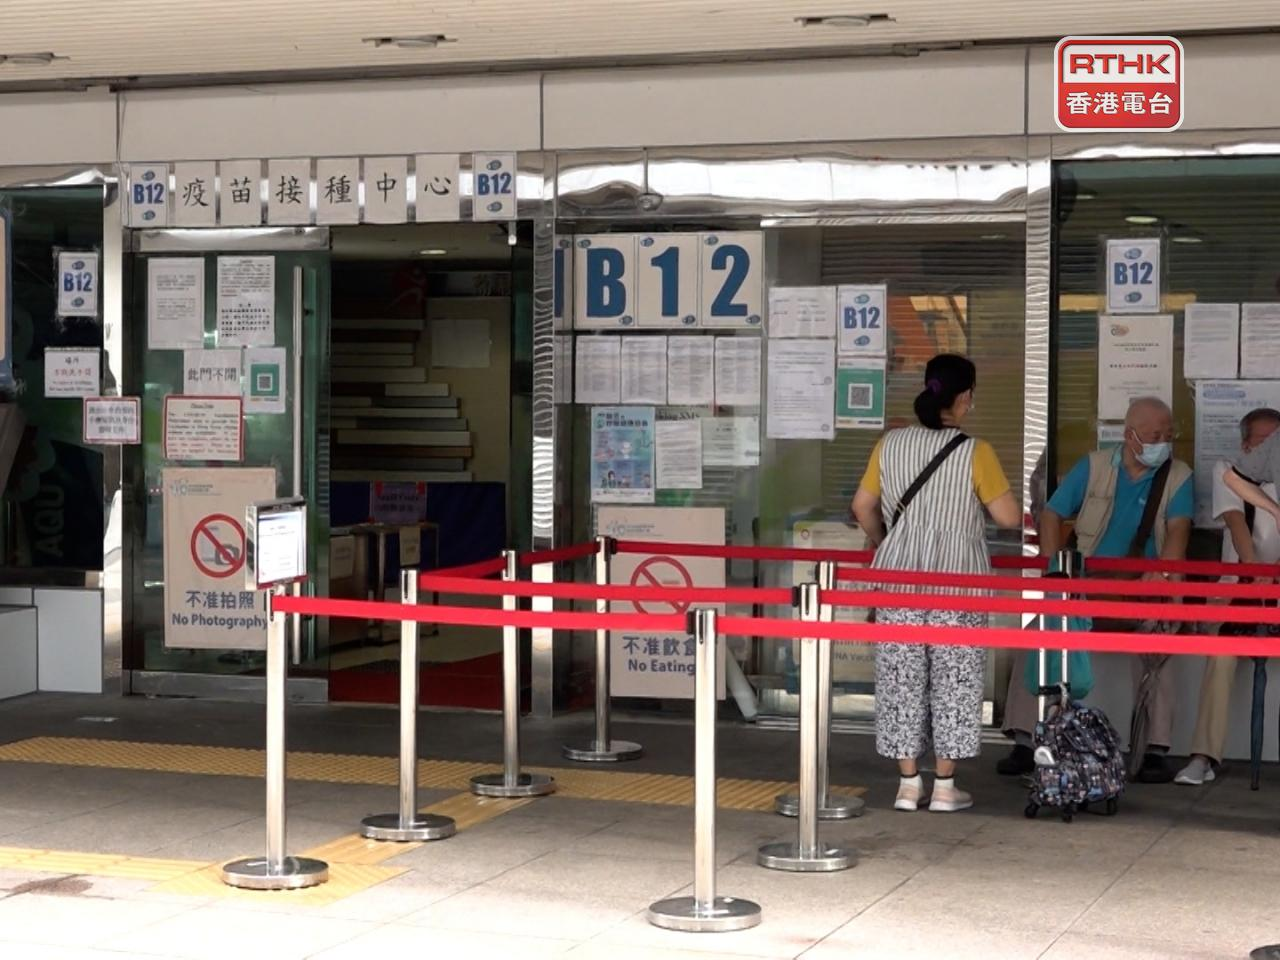 Government workers have to get at least a shot of a Covid-19 jab, or else they will need to be tested every two weeks. Photo: RTHK